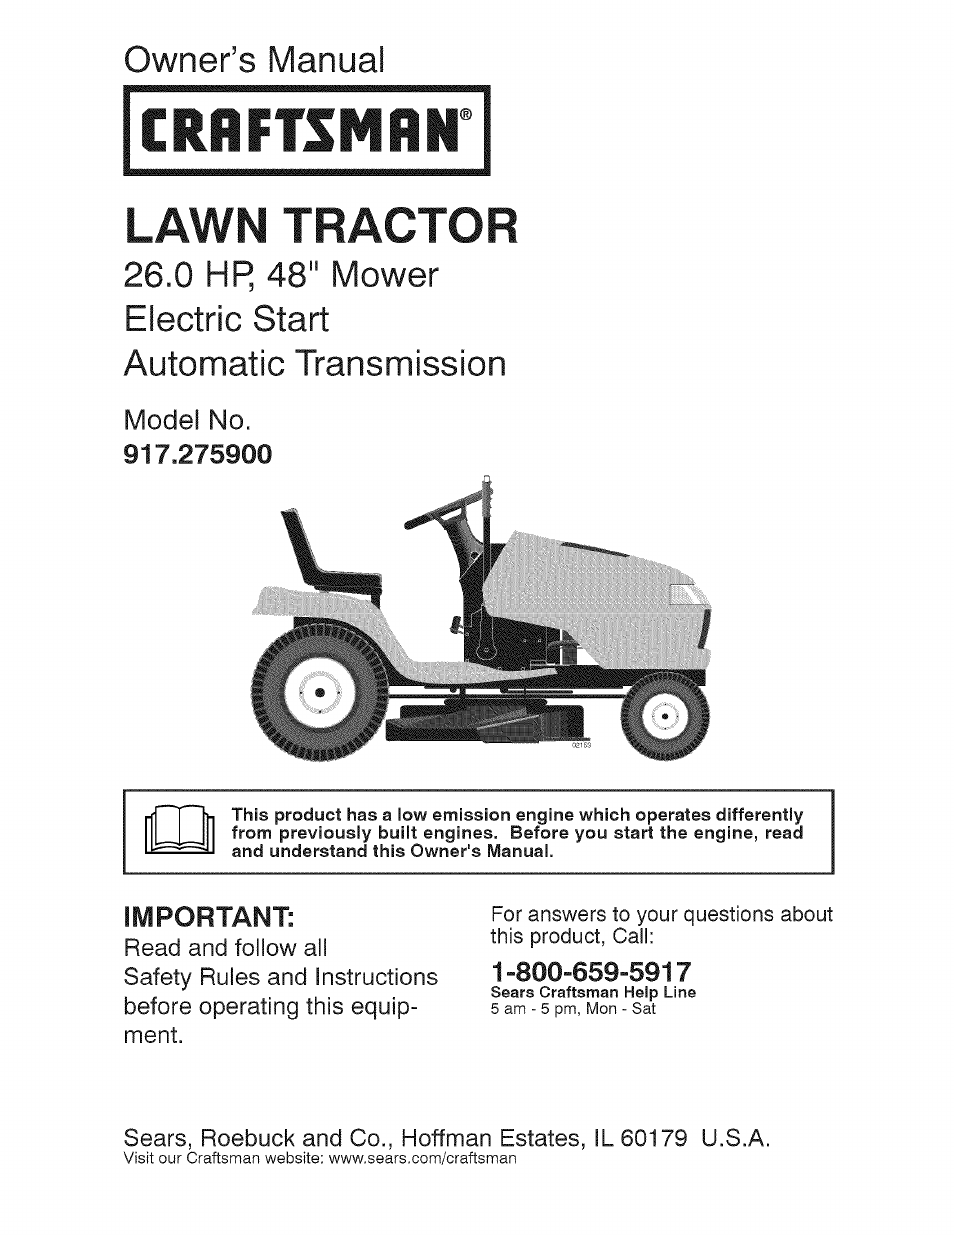 Craftsman Lt1000 Mower Manual : Craftsman user manual pages